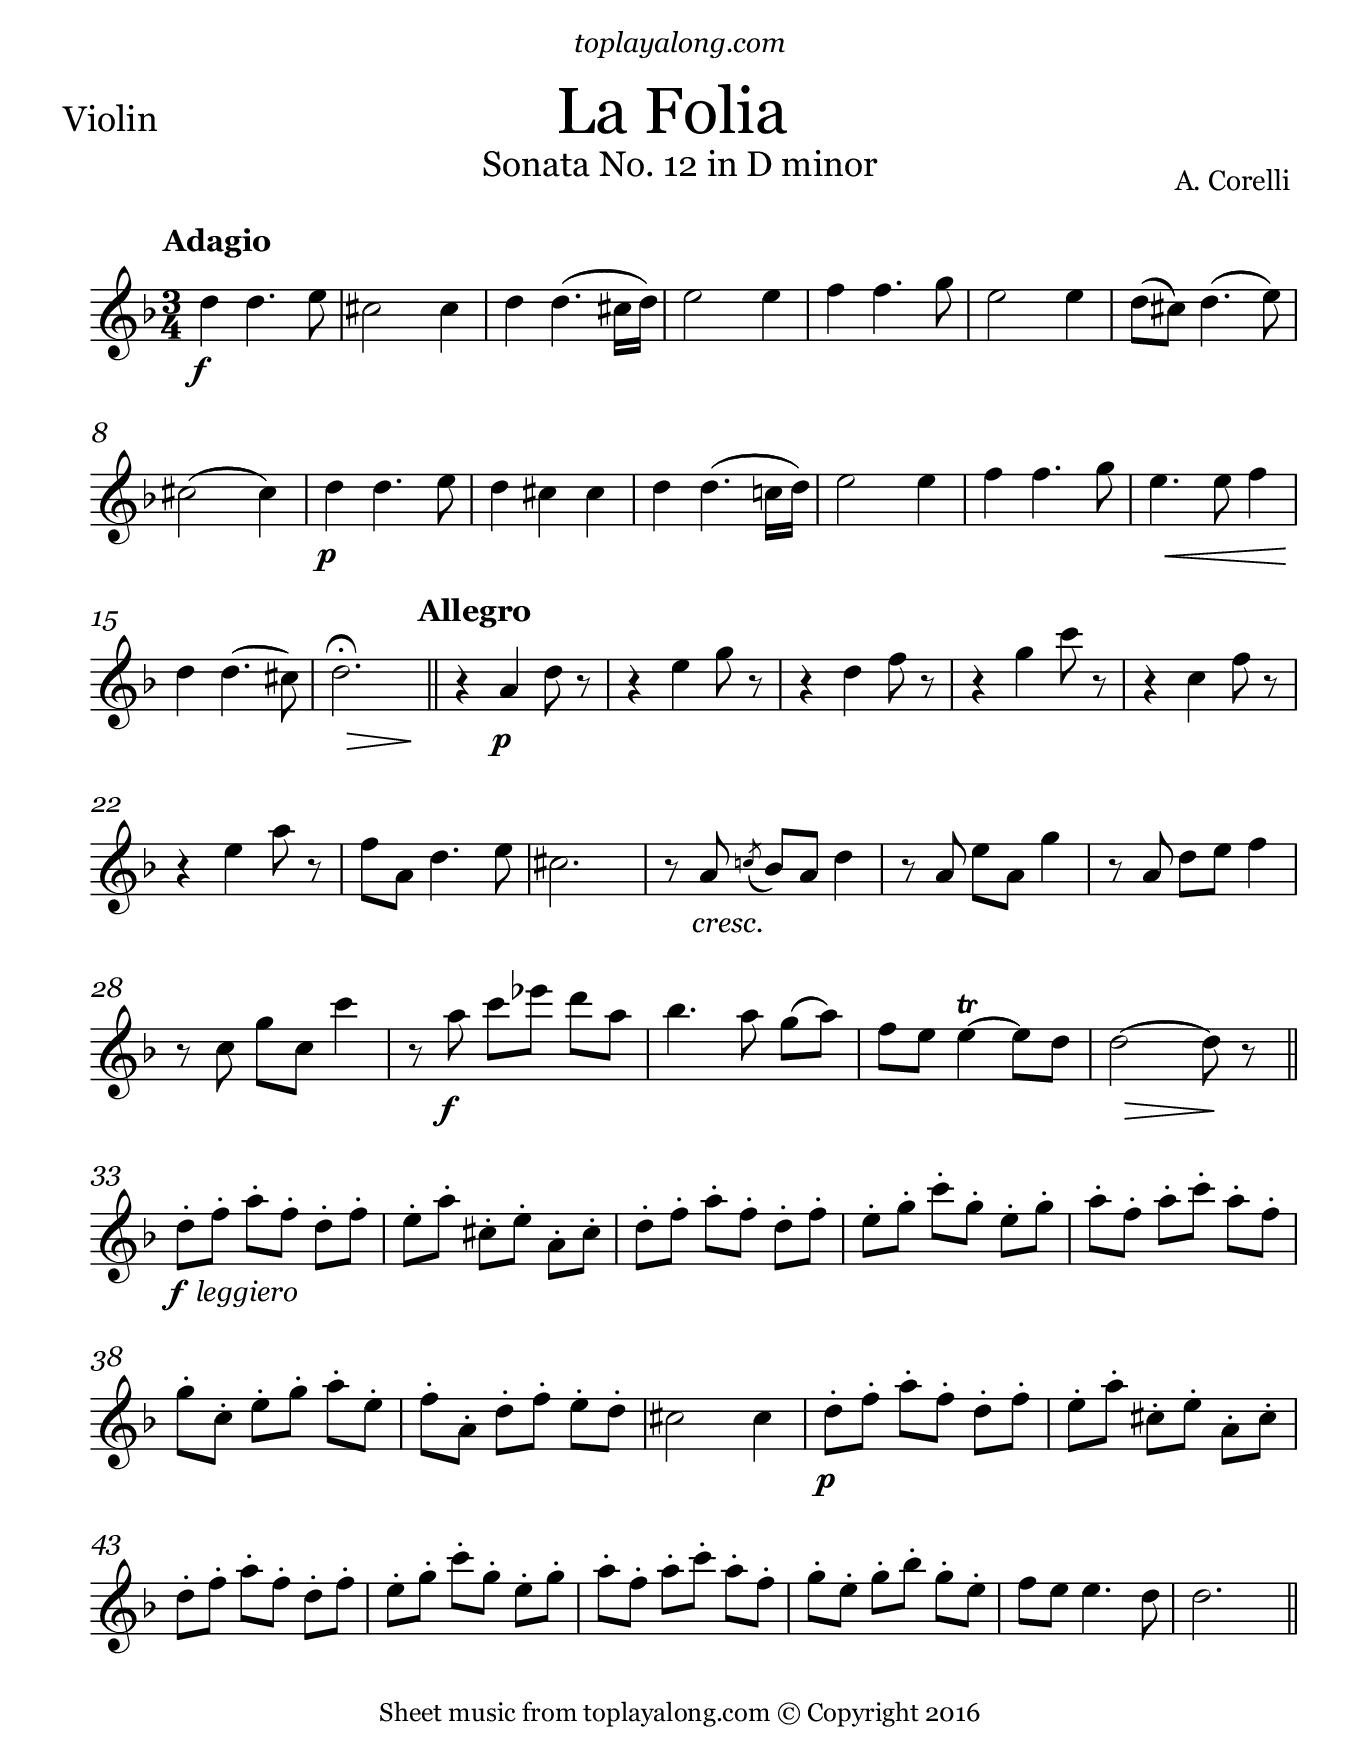 La Folia by Corelli. Sheet music for Violin, page 1.